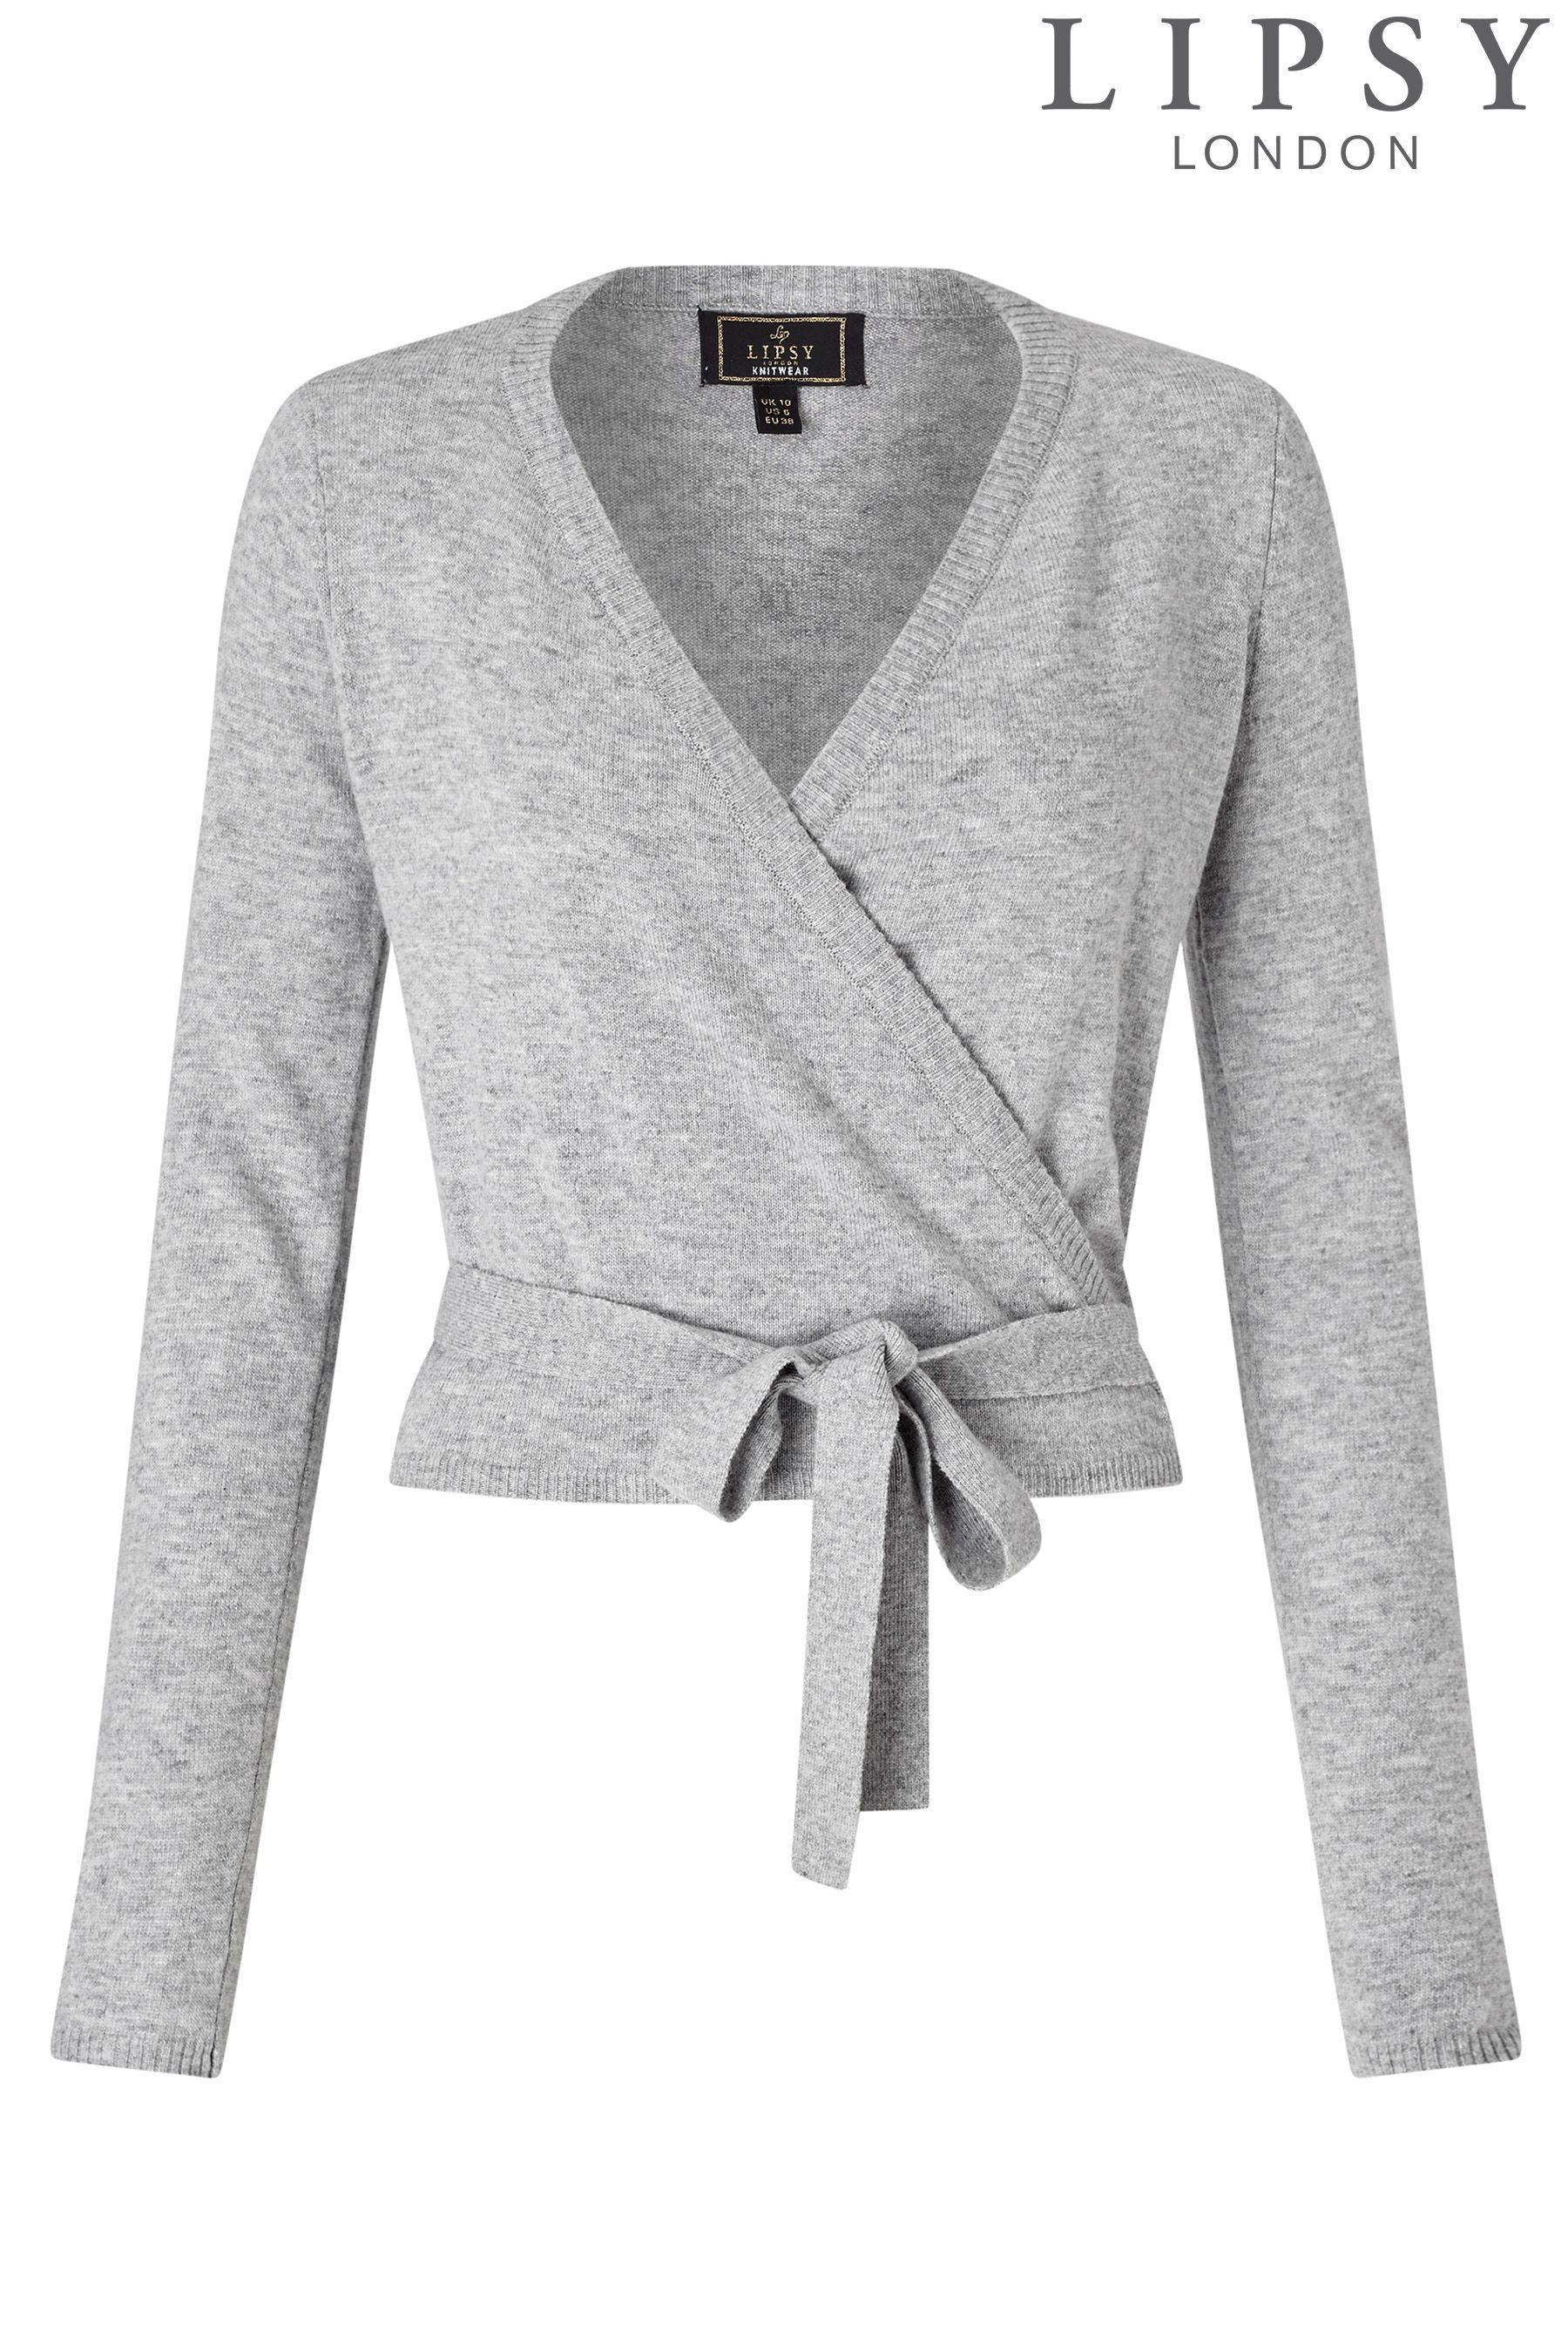 Buy Lipsy Wrap Cardigan from the Next UK online shop | May 12th ...